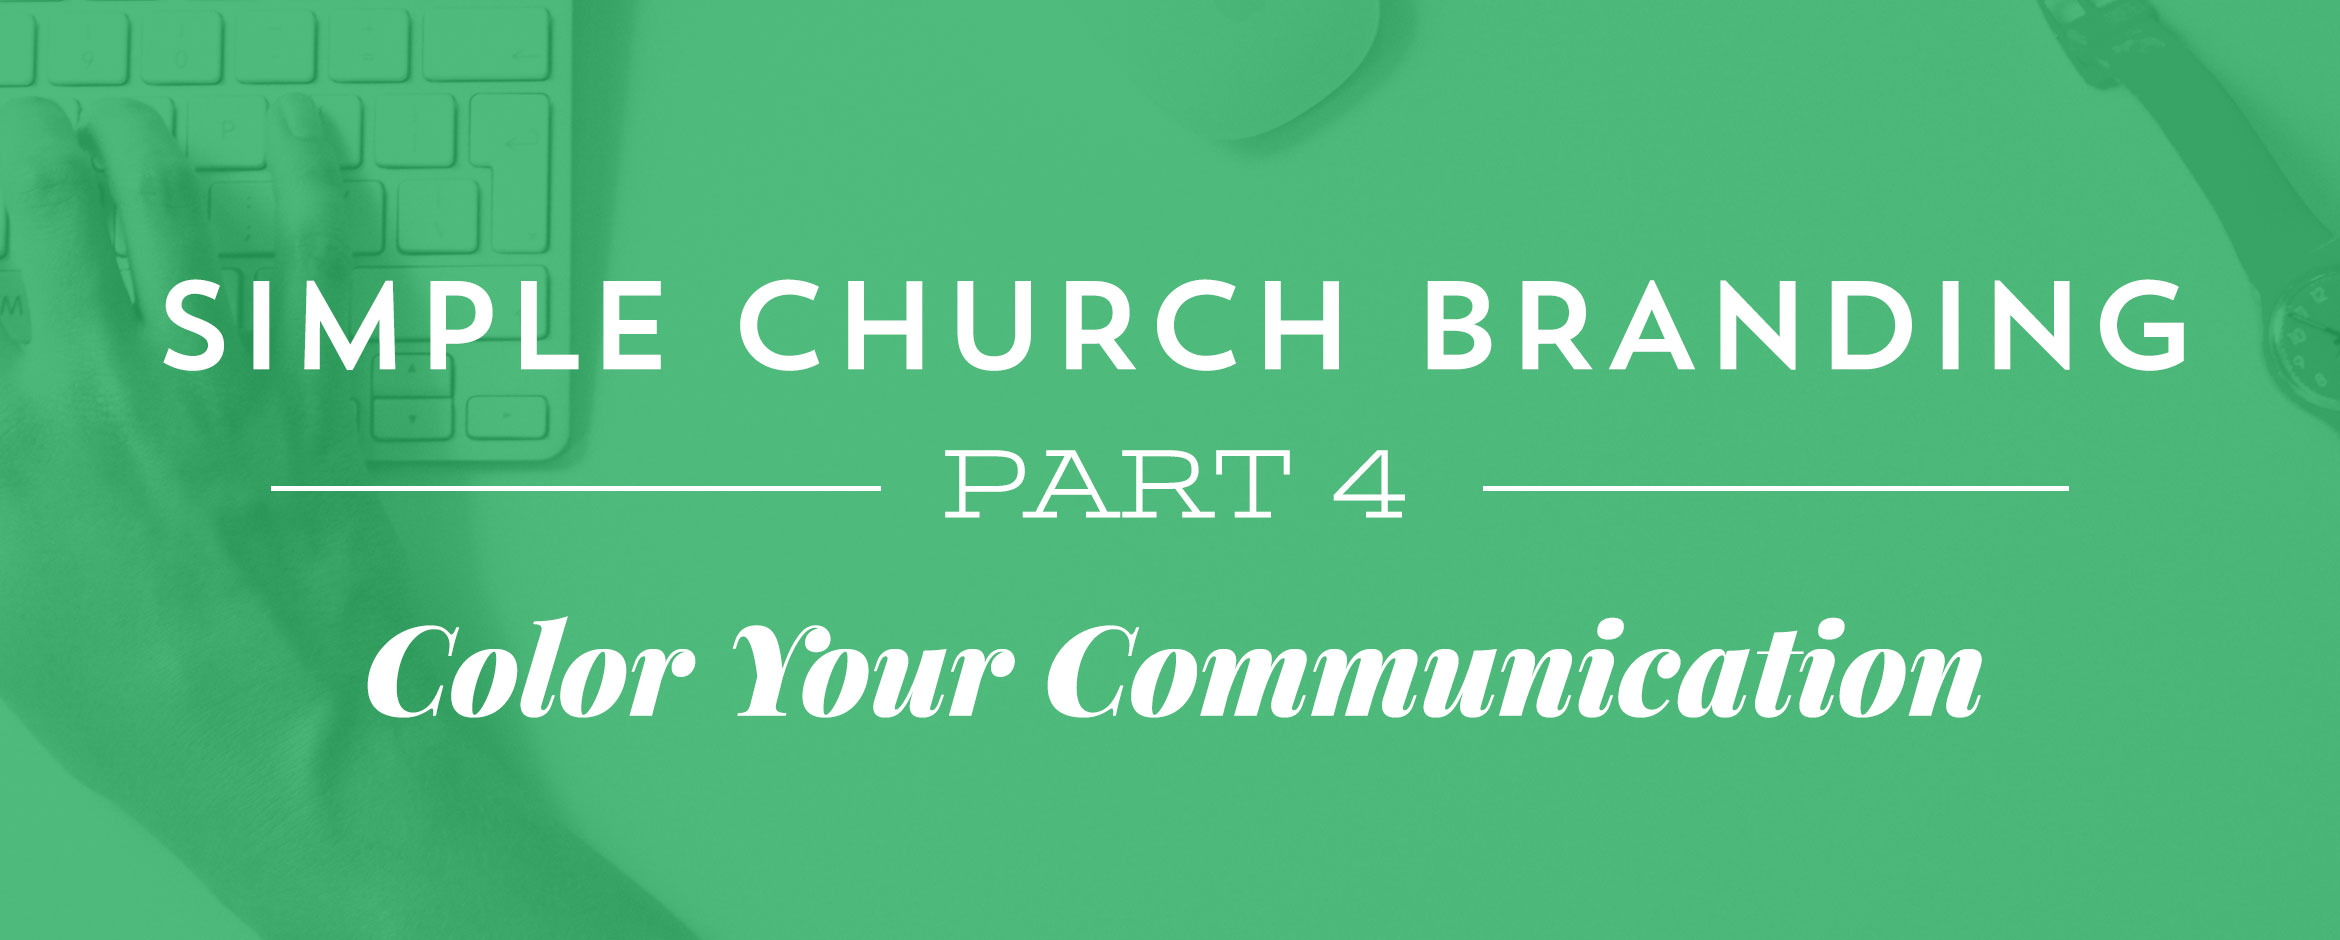 Simple Church Branding, Part 4: Color Your Communication - Defining ...